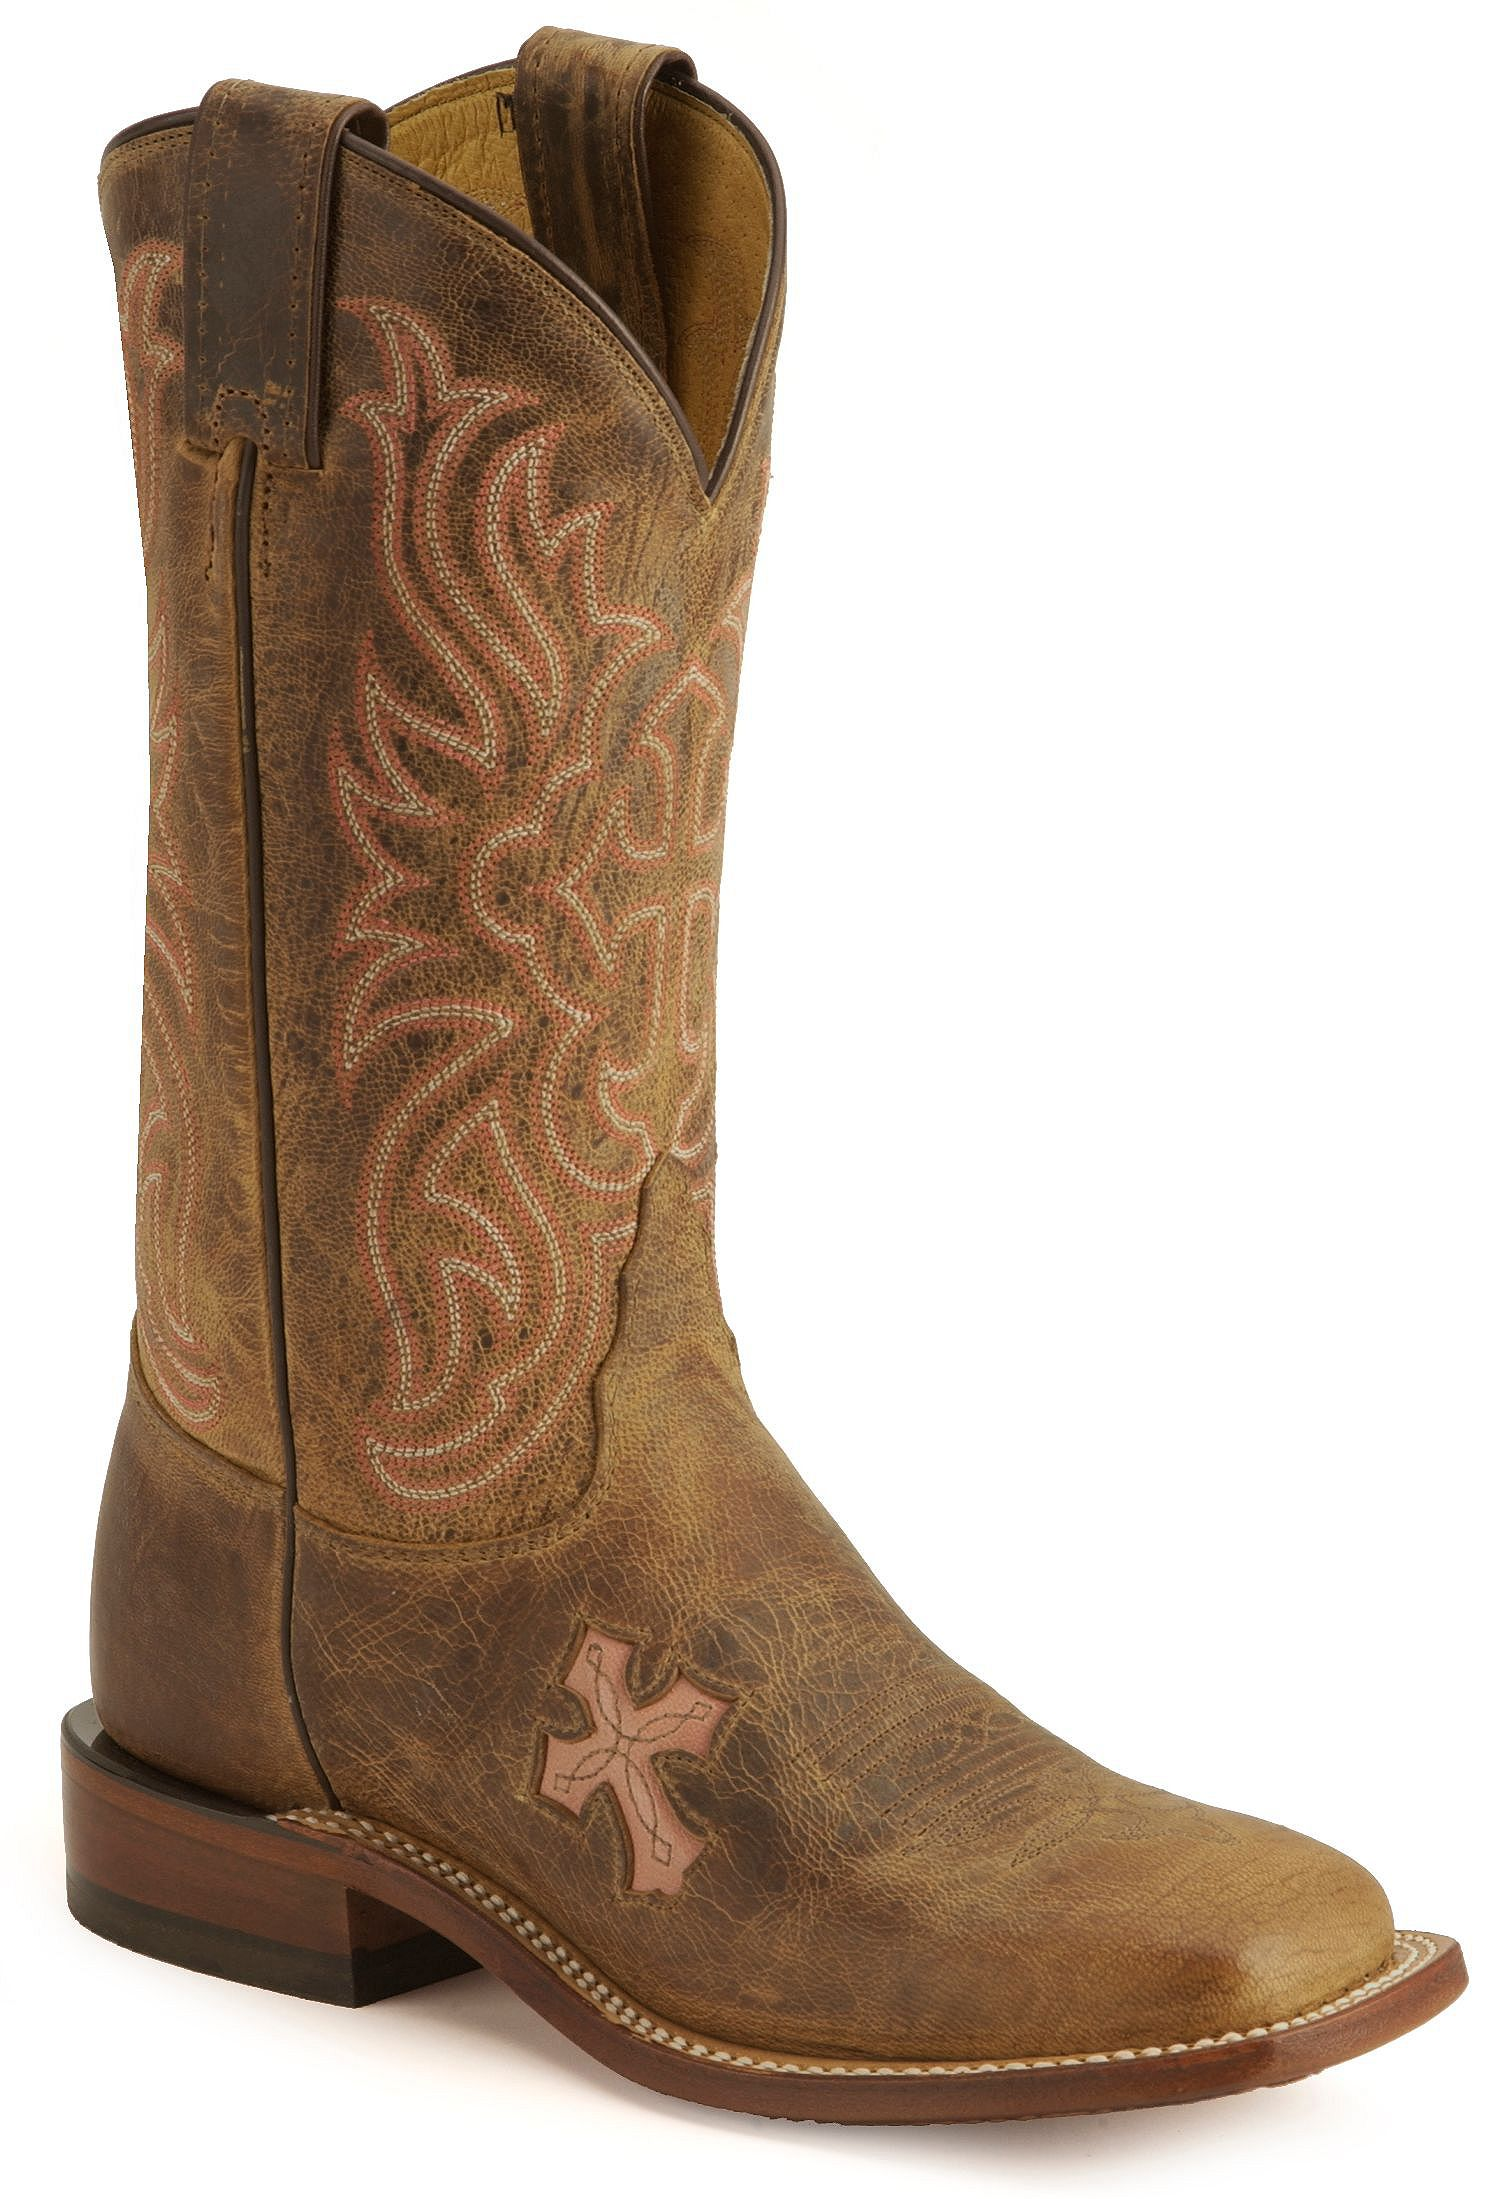 Tony Lama Cross Inlay Cowgirl Boots - Square Toe - Country Outfitter